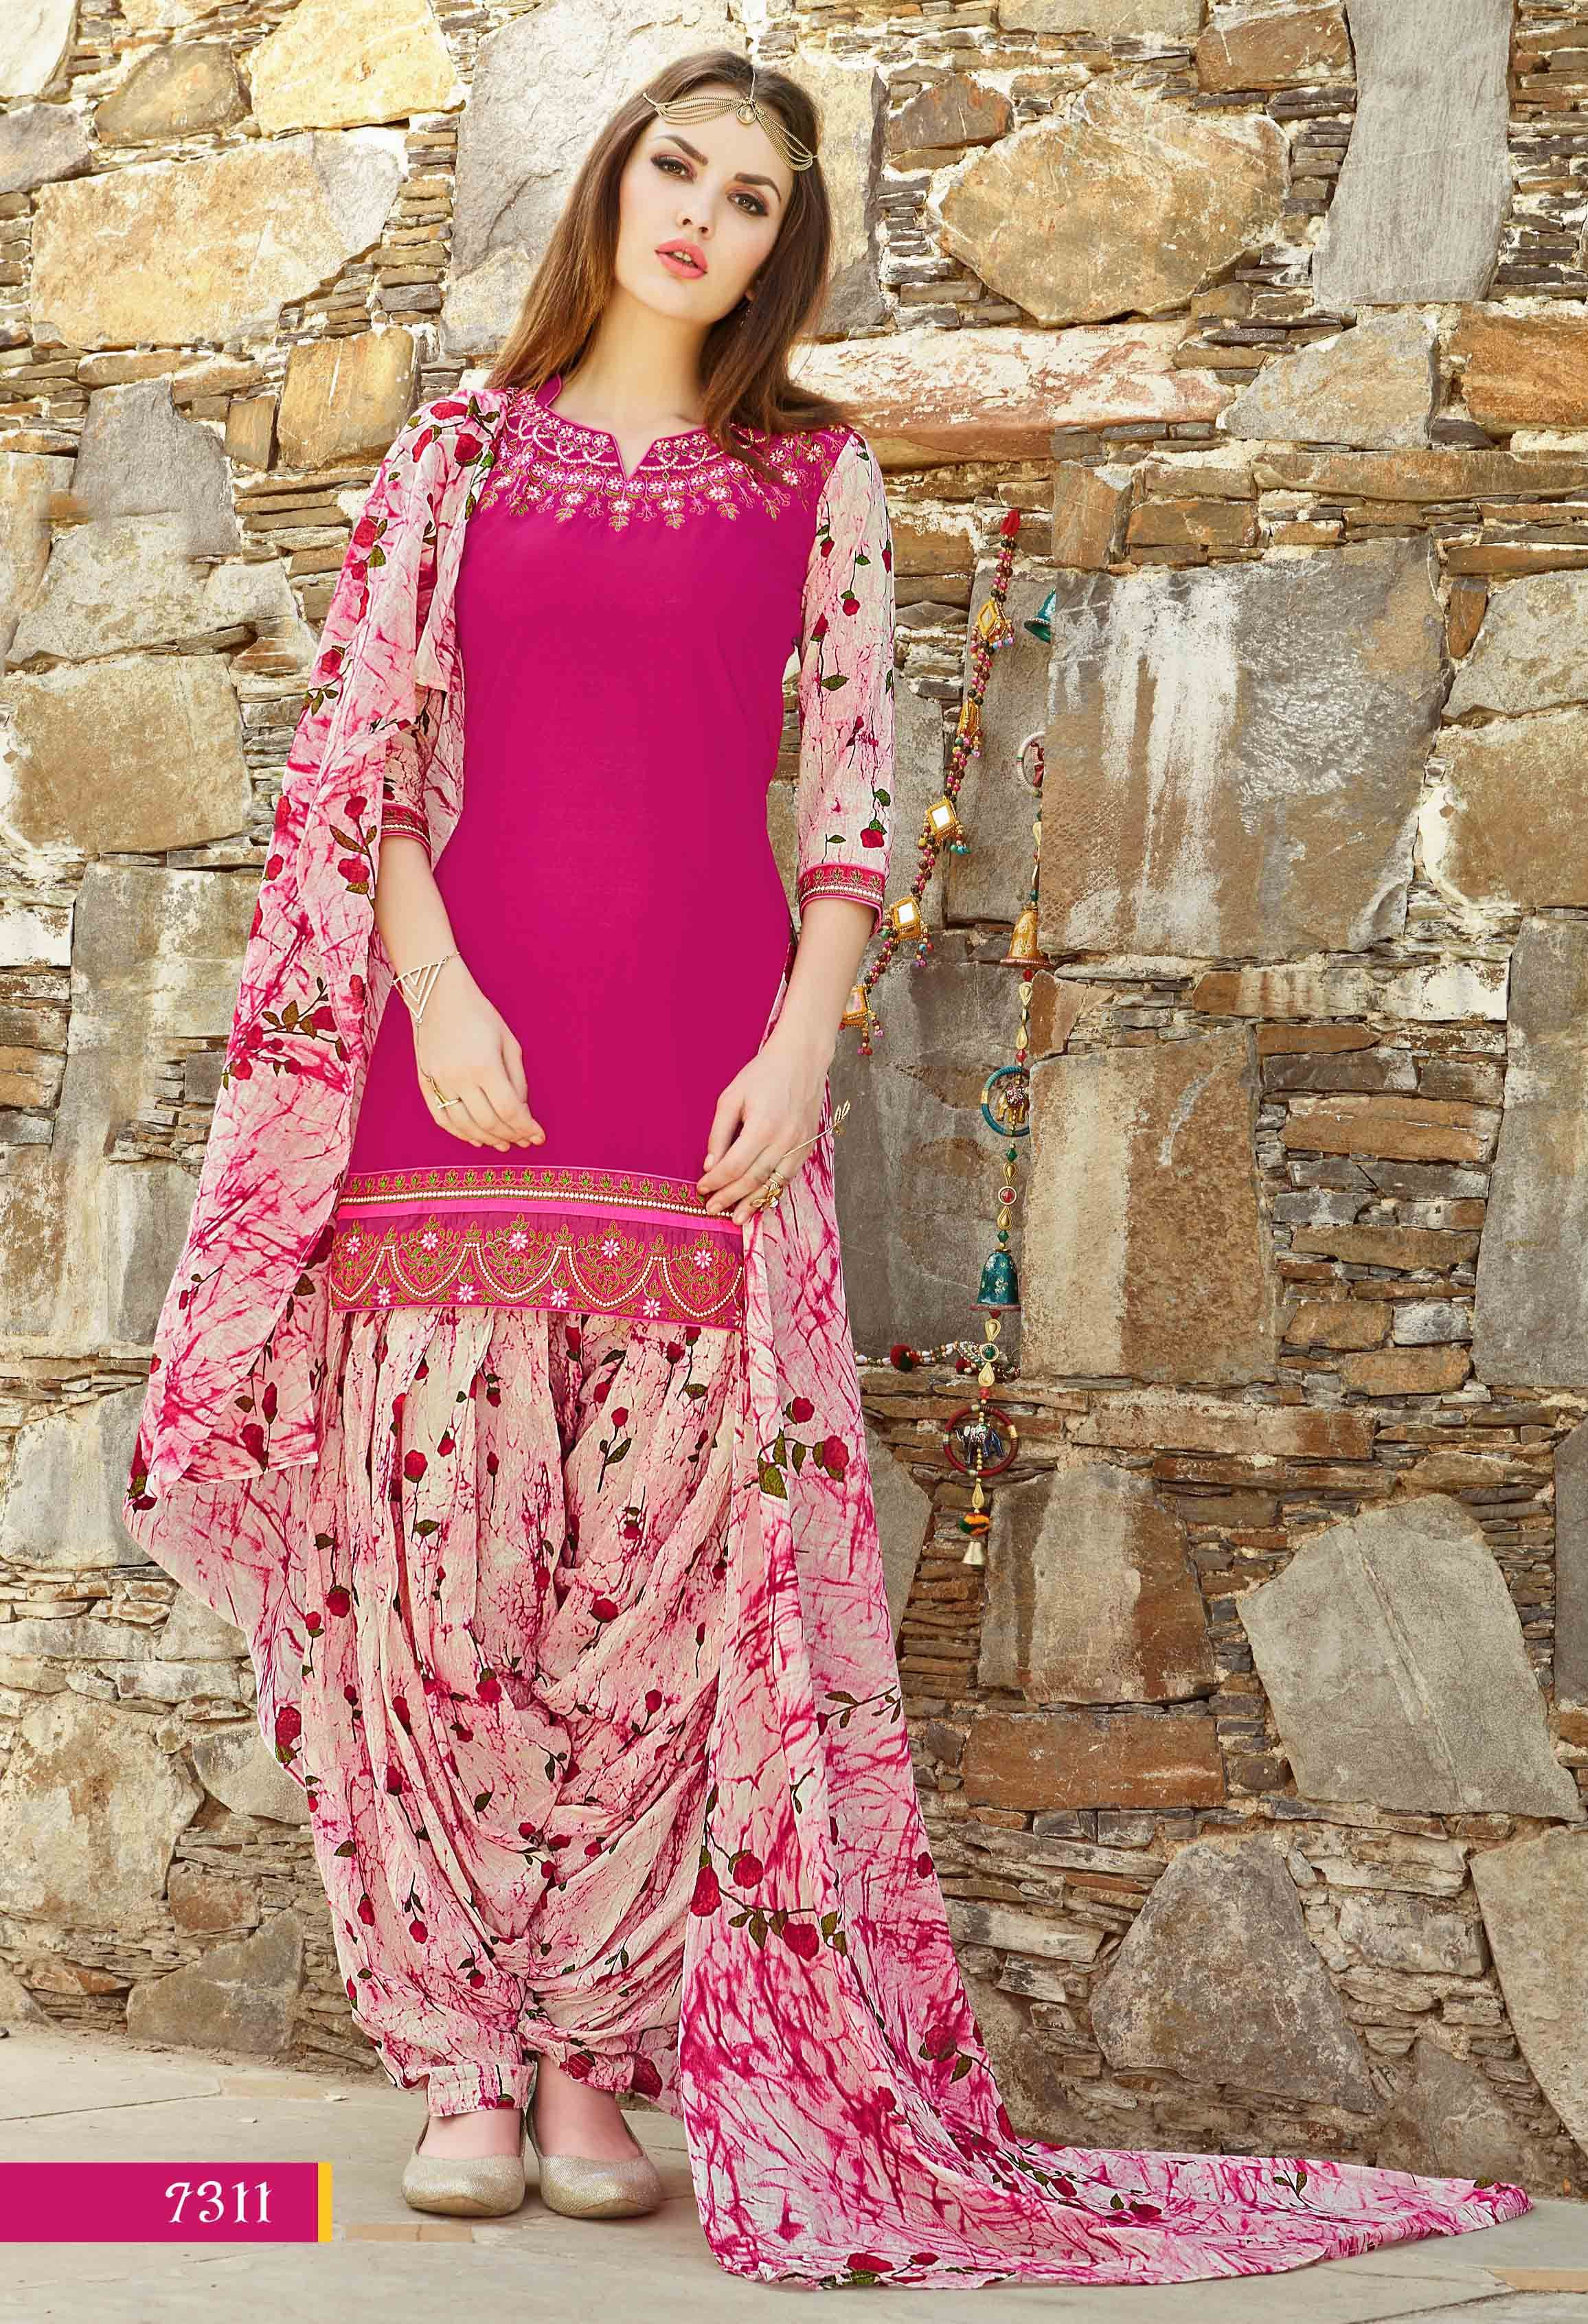 025aaf0628 Fashionnow Pink Cotton Patiala Salwar Kameez | Indian Outfits ...